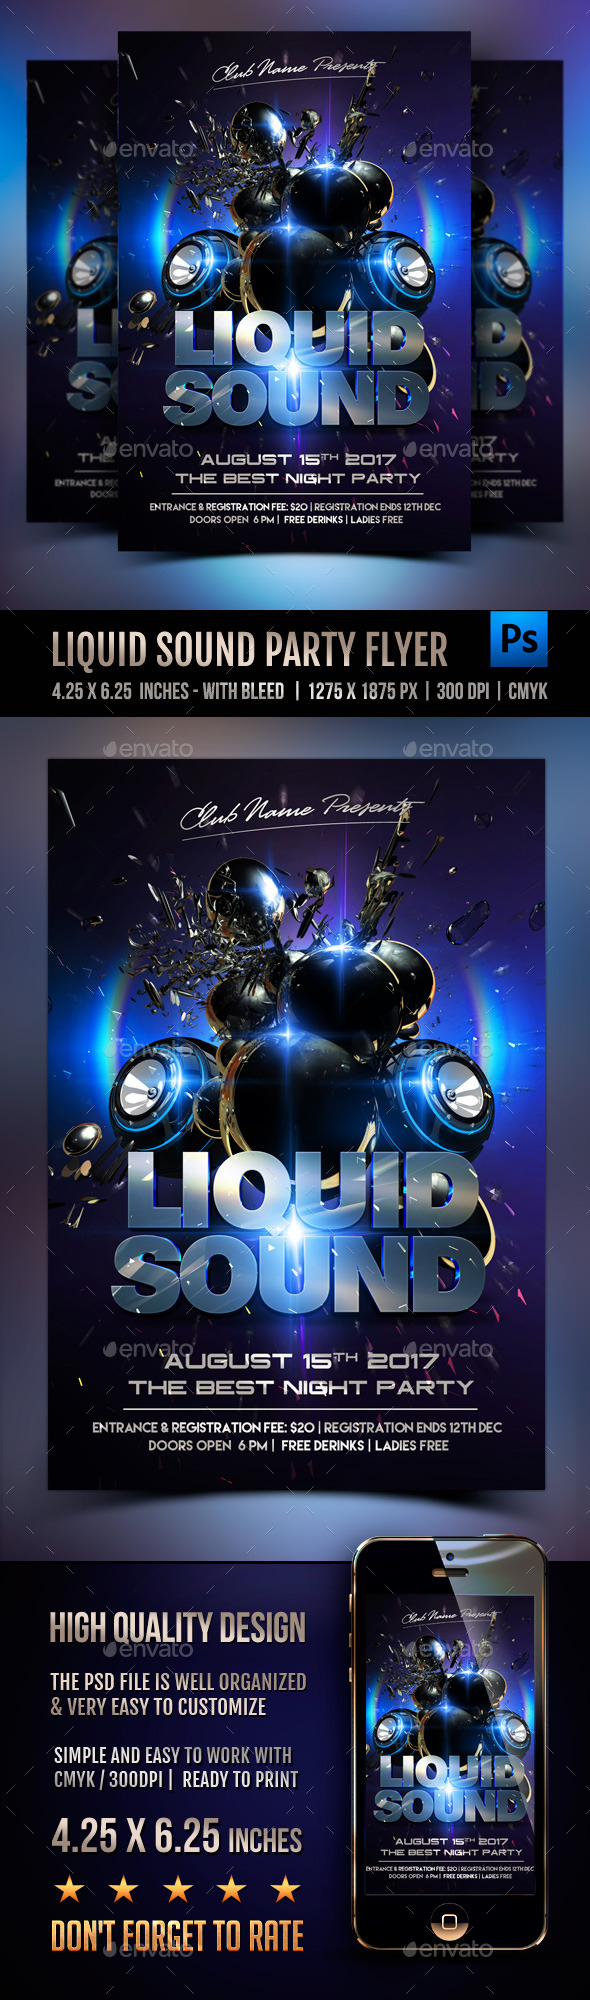 Liquid Sound Party Flyer - Clubs & Parties Events